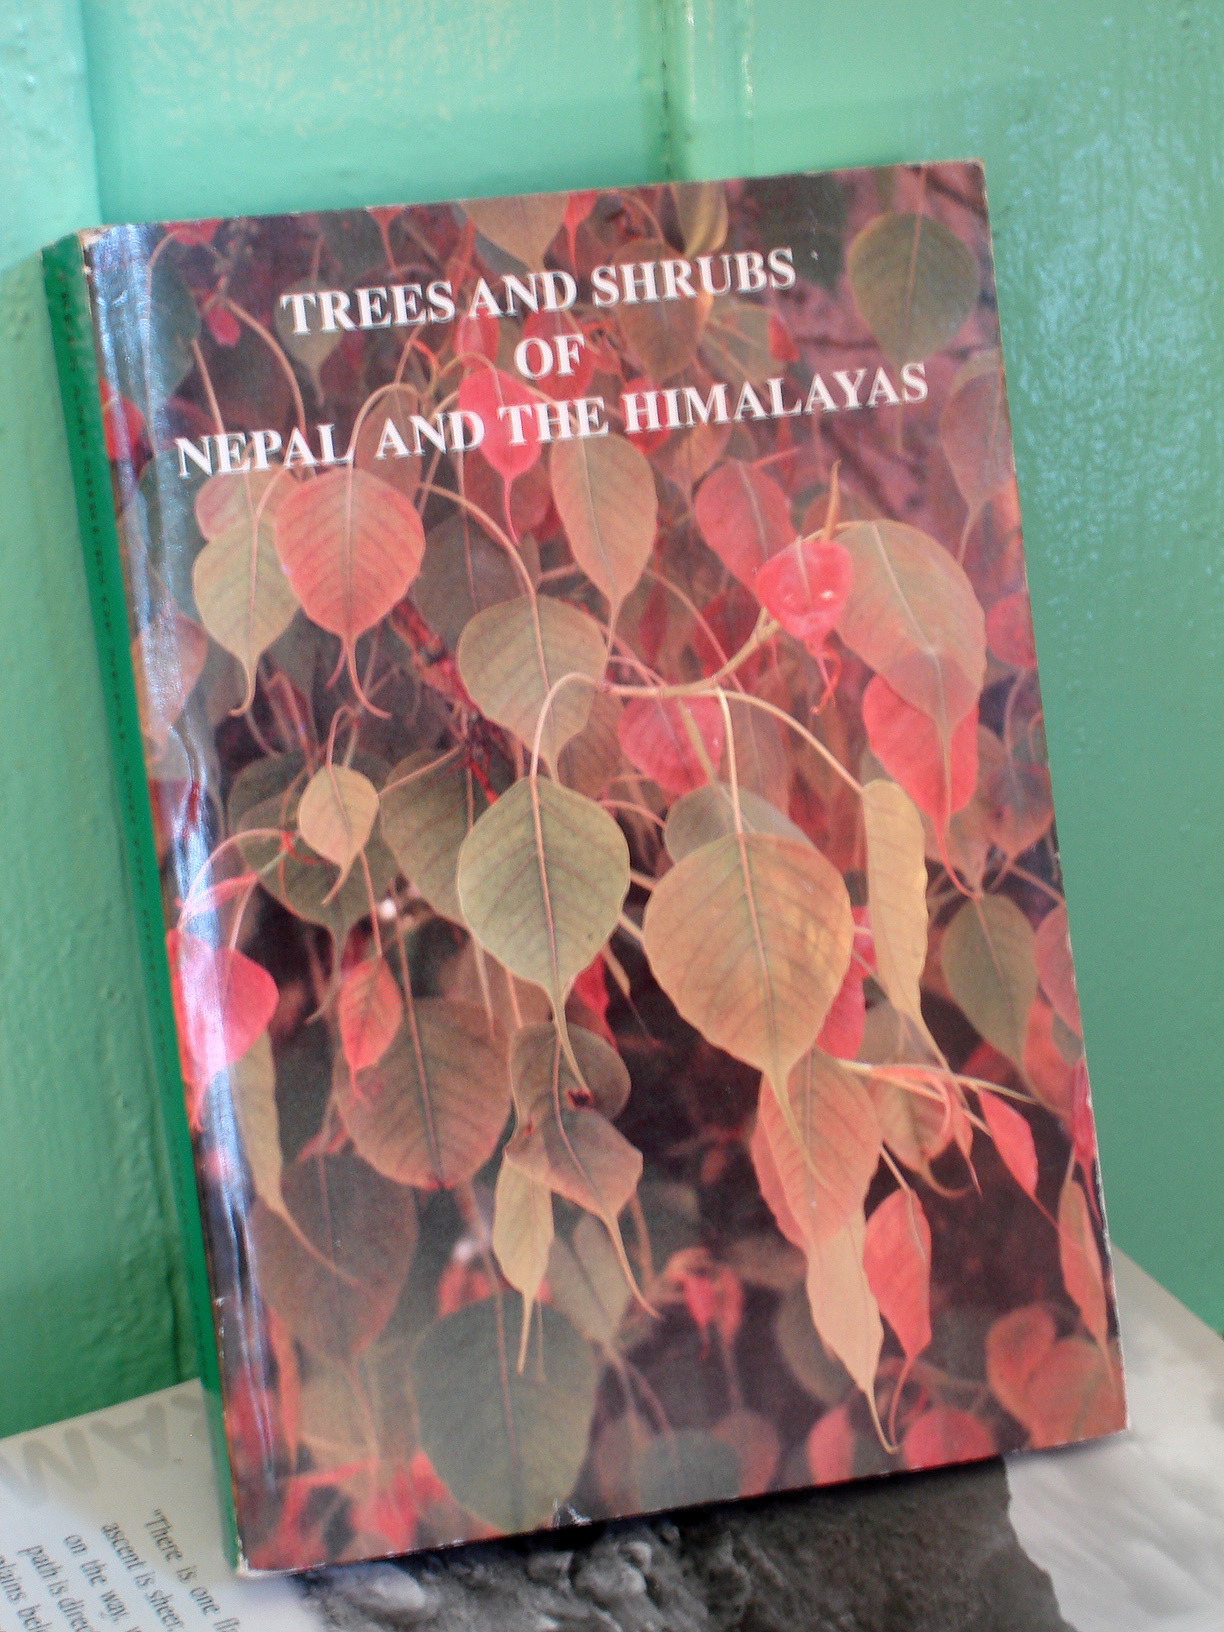 Trees & Shrubs of Nepal & the Himalayas